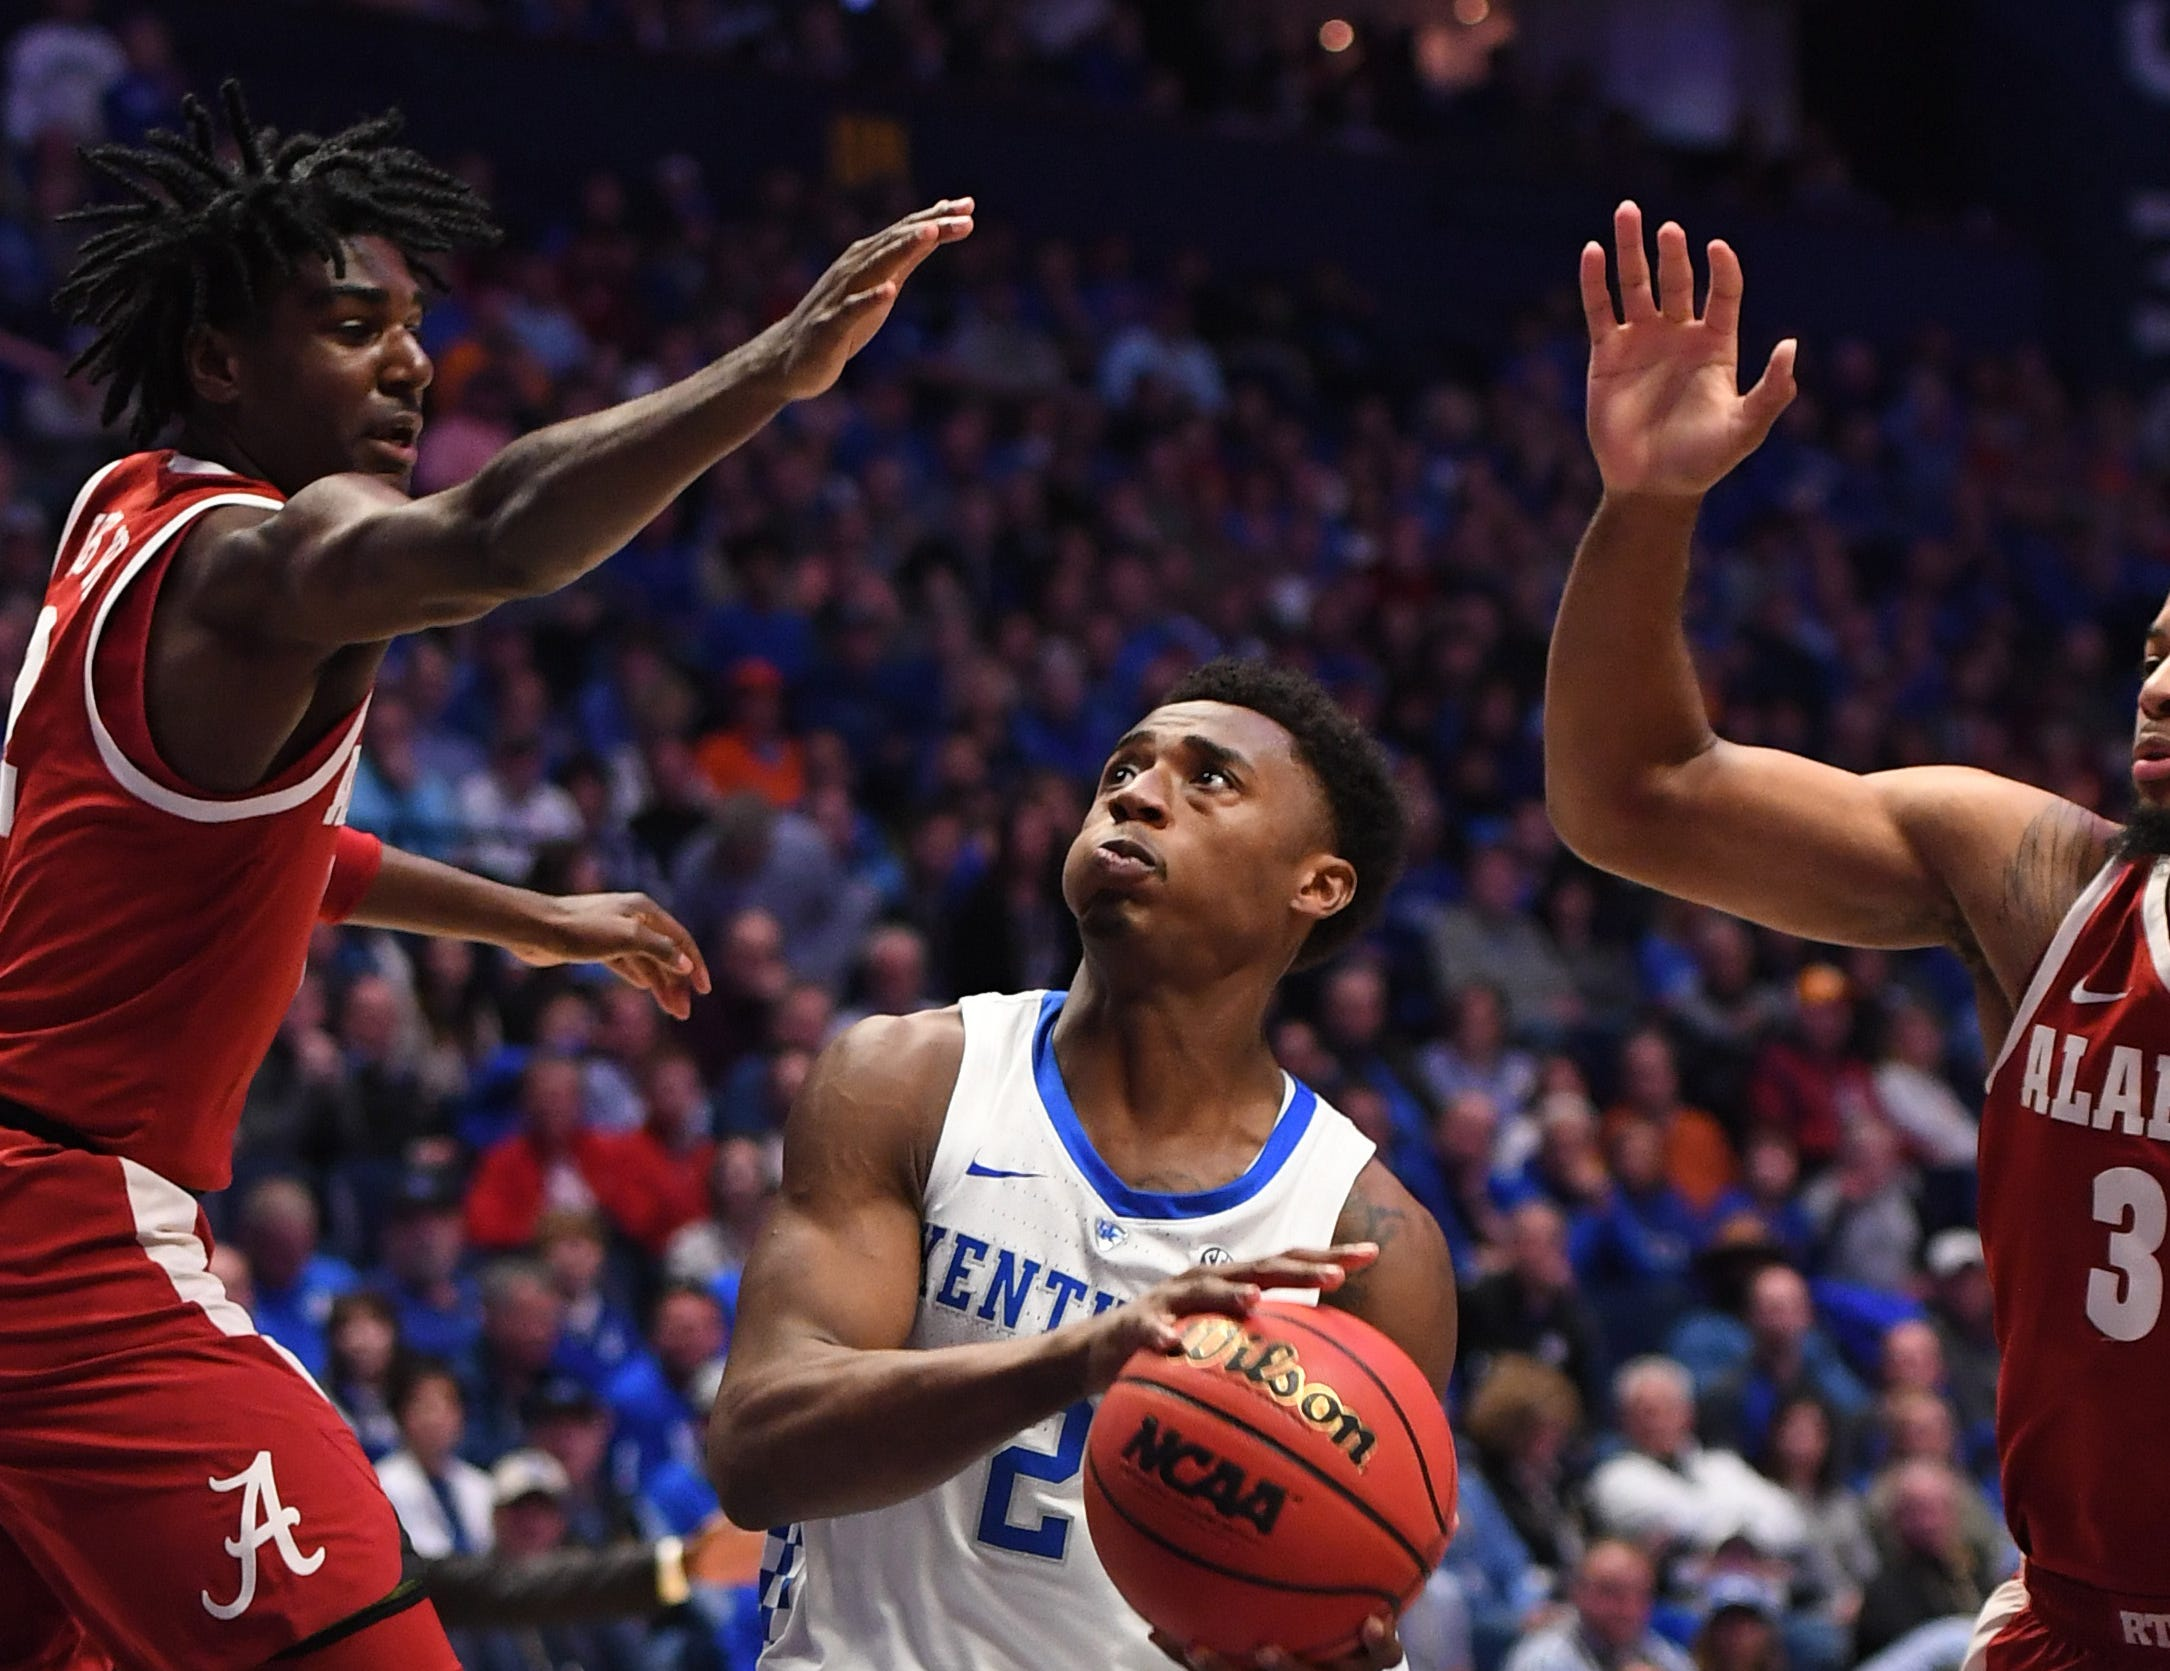 Mar 15, 2019; Nashville, TN, USA; Kentucky Wildcats guard Ashton Hagans (2) drives the lane against the Alabama Crimson Tide during the first half of the SEC conference tournament at Bridgestone Arena. Mandatory Credit: Christopher Hanewinckel-USA TODAY Sports